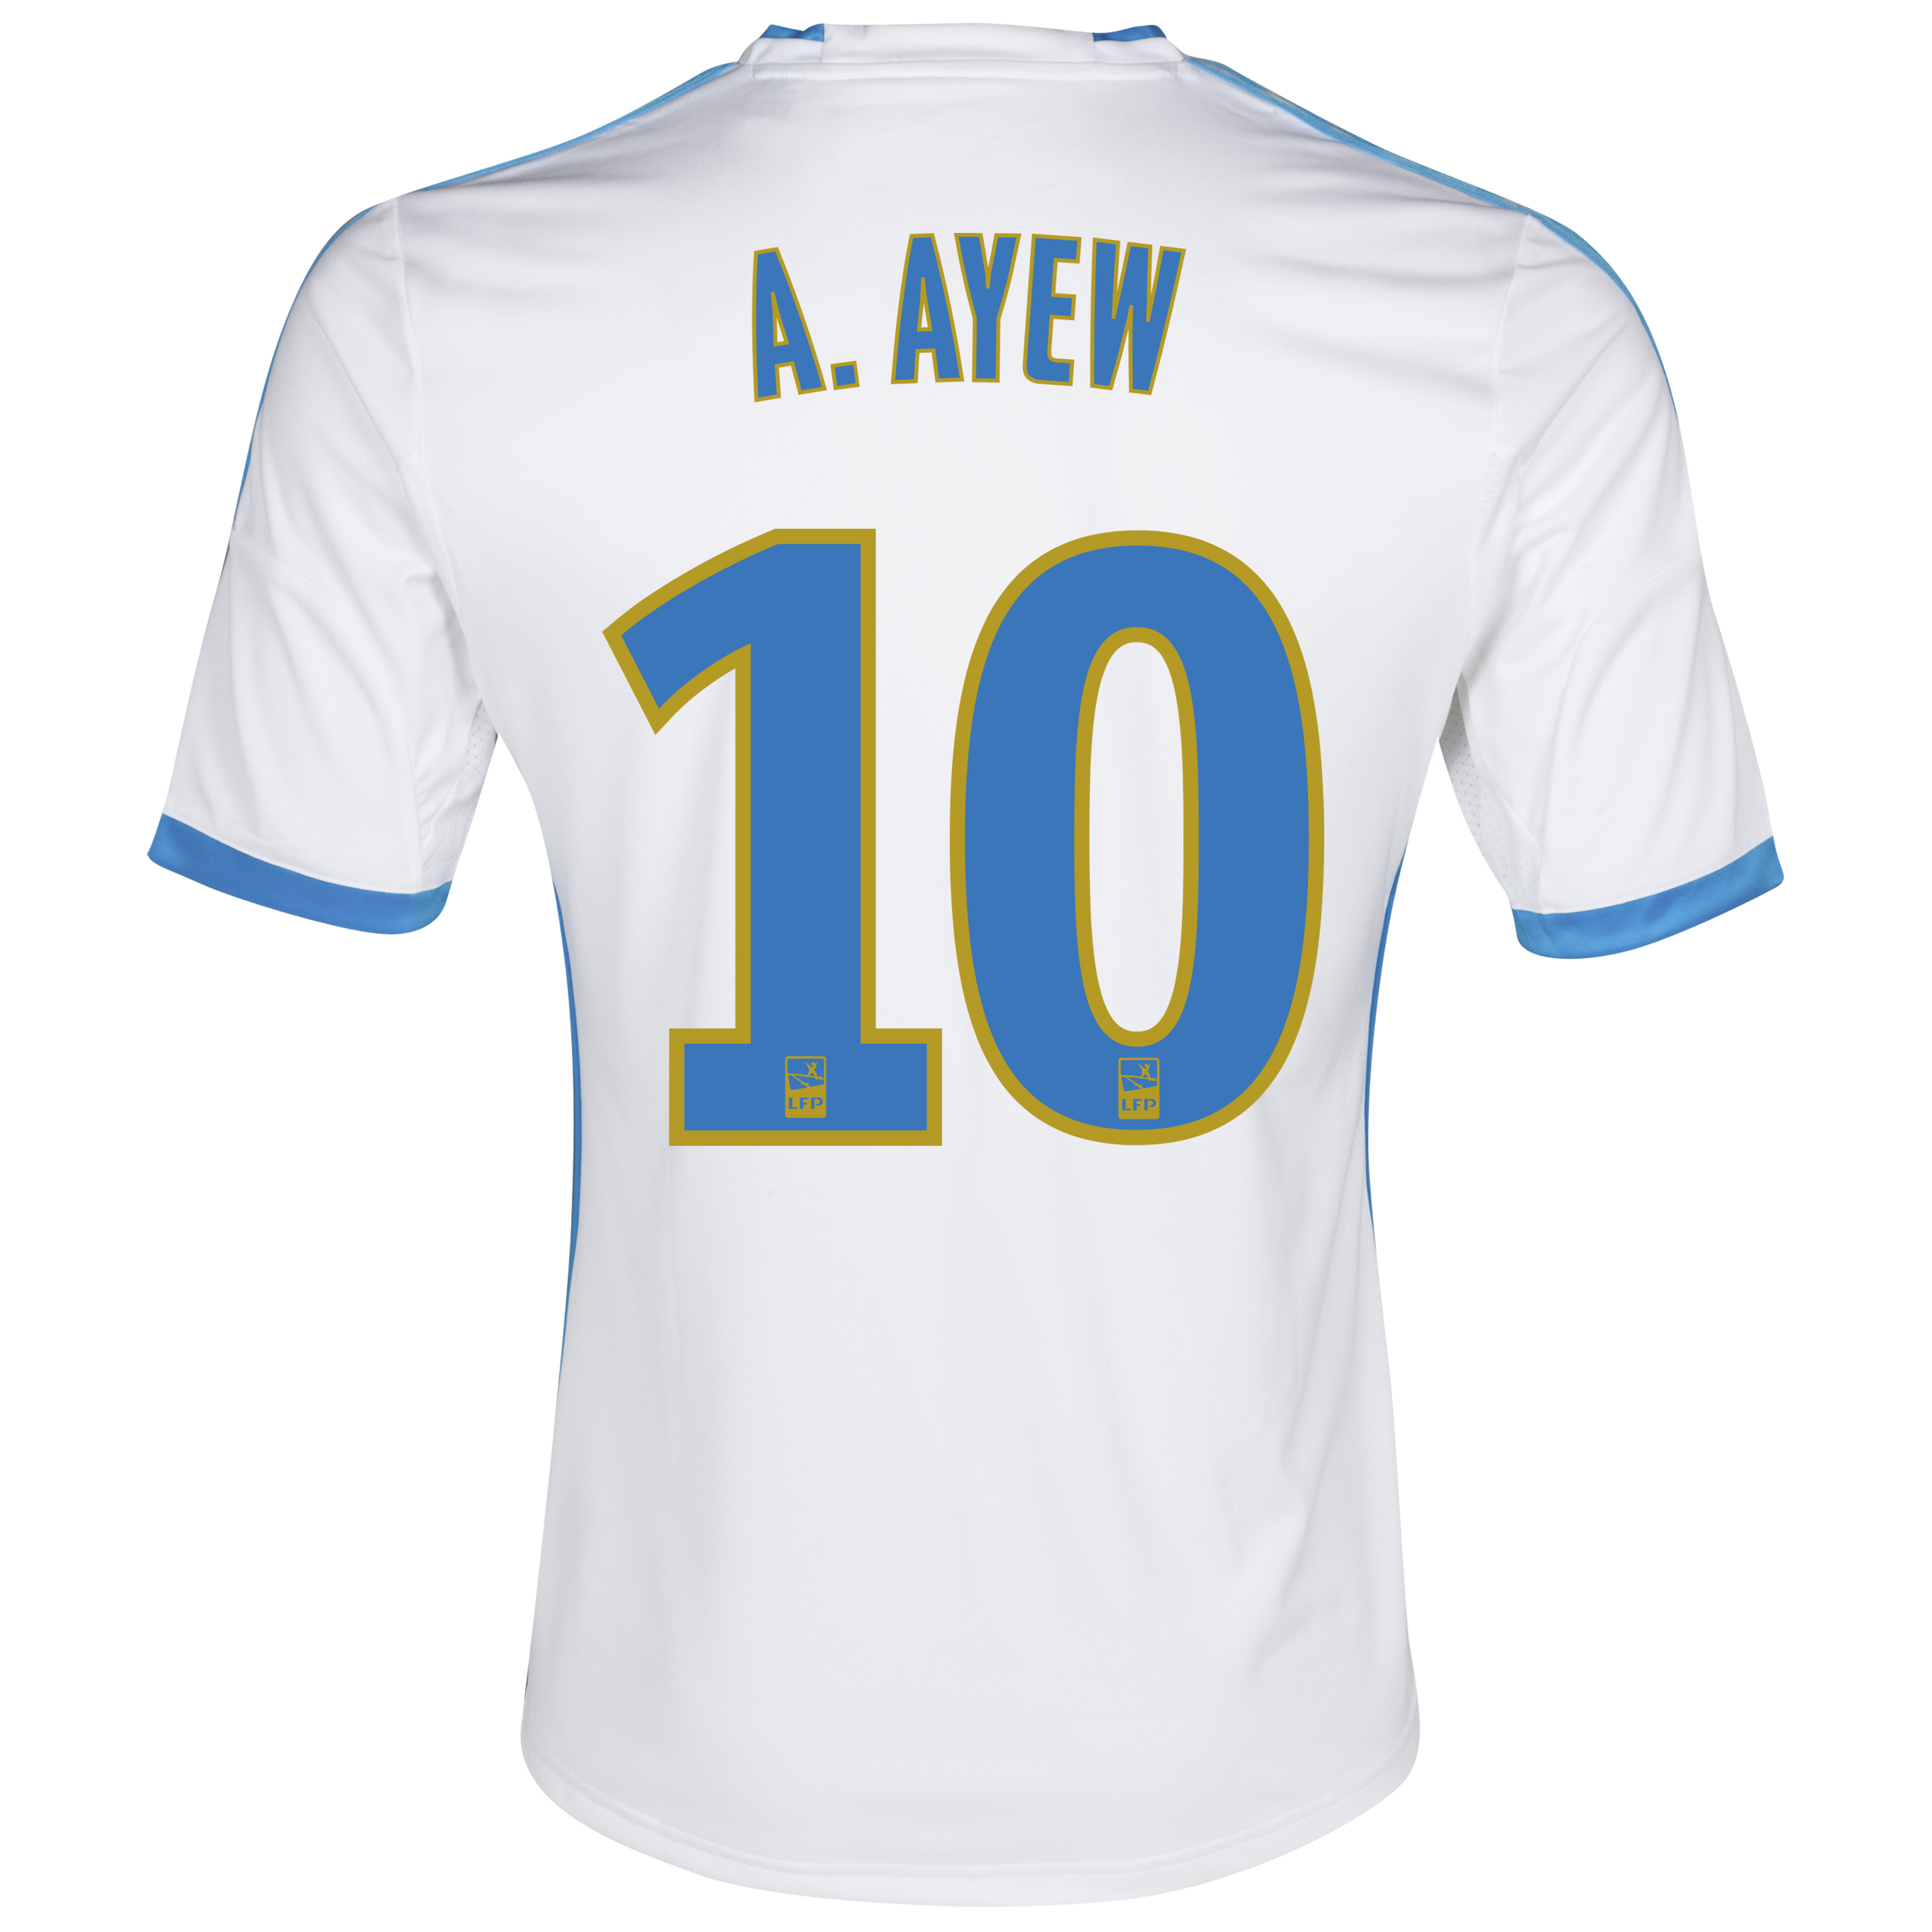 Olympique de Marseille Home Shirt SS 2013/14 - Kids White with A.Ayew 10 printing